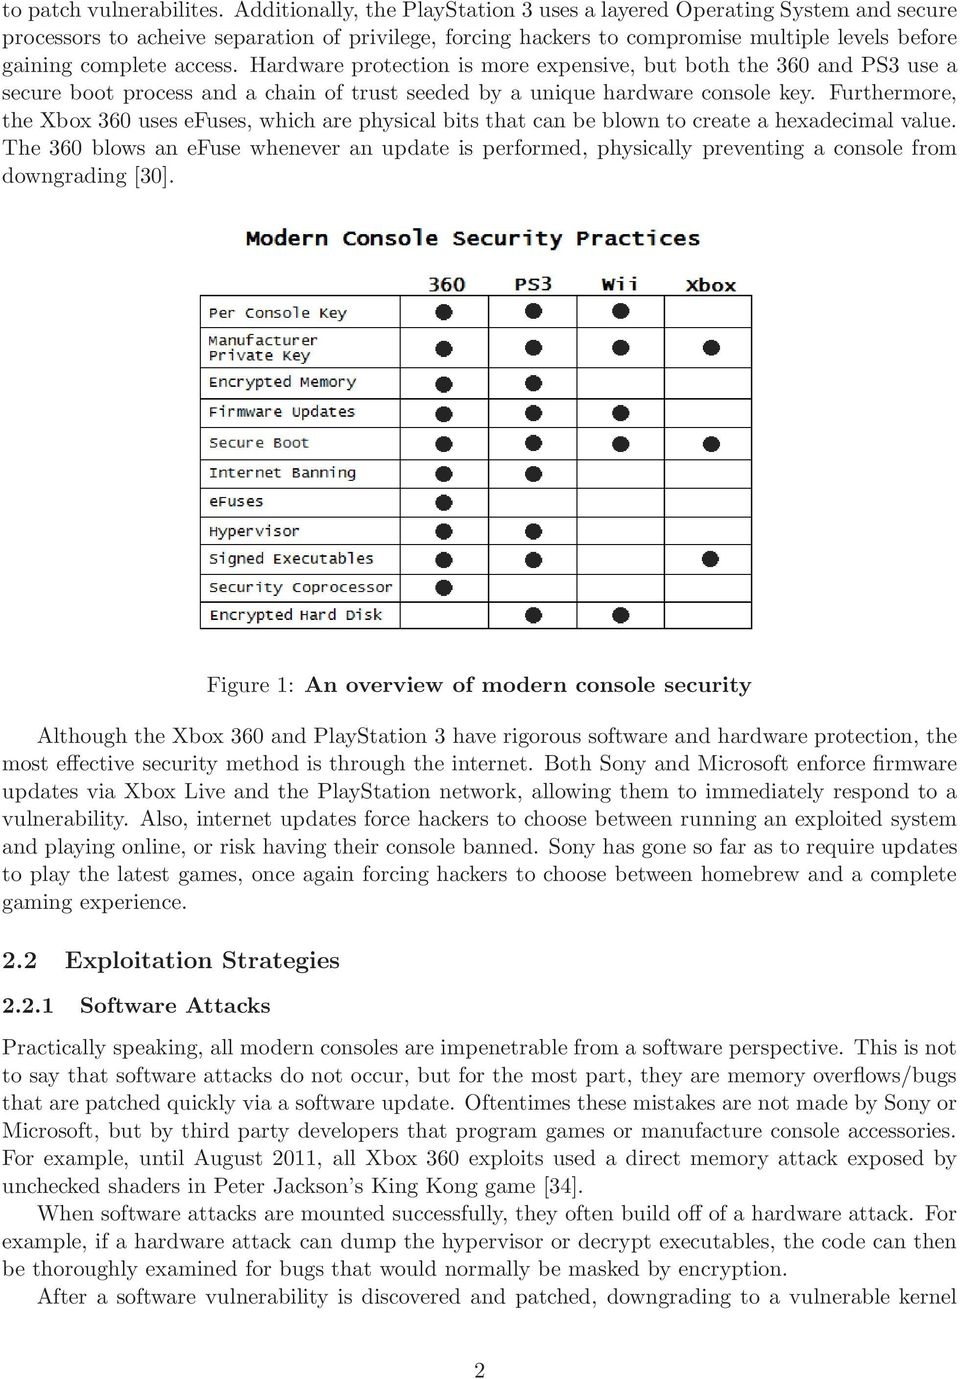 Modern Game Console Exploitation - PDF on